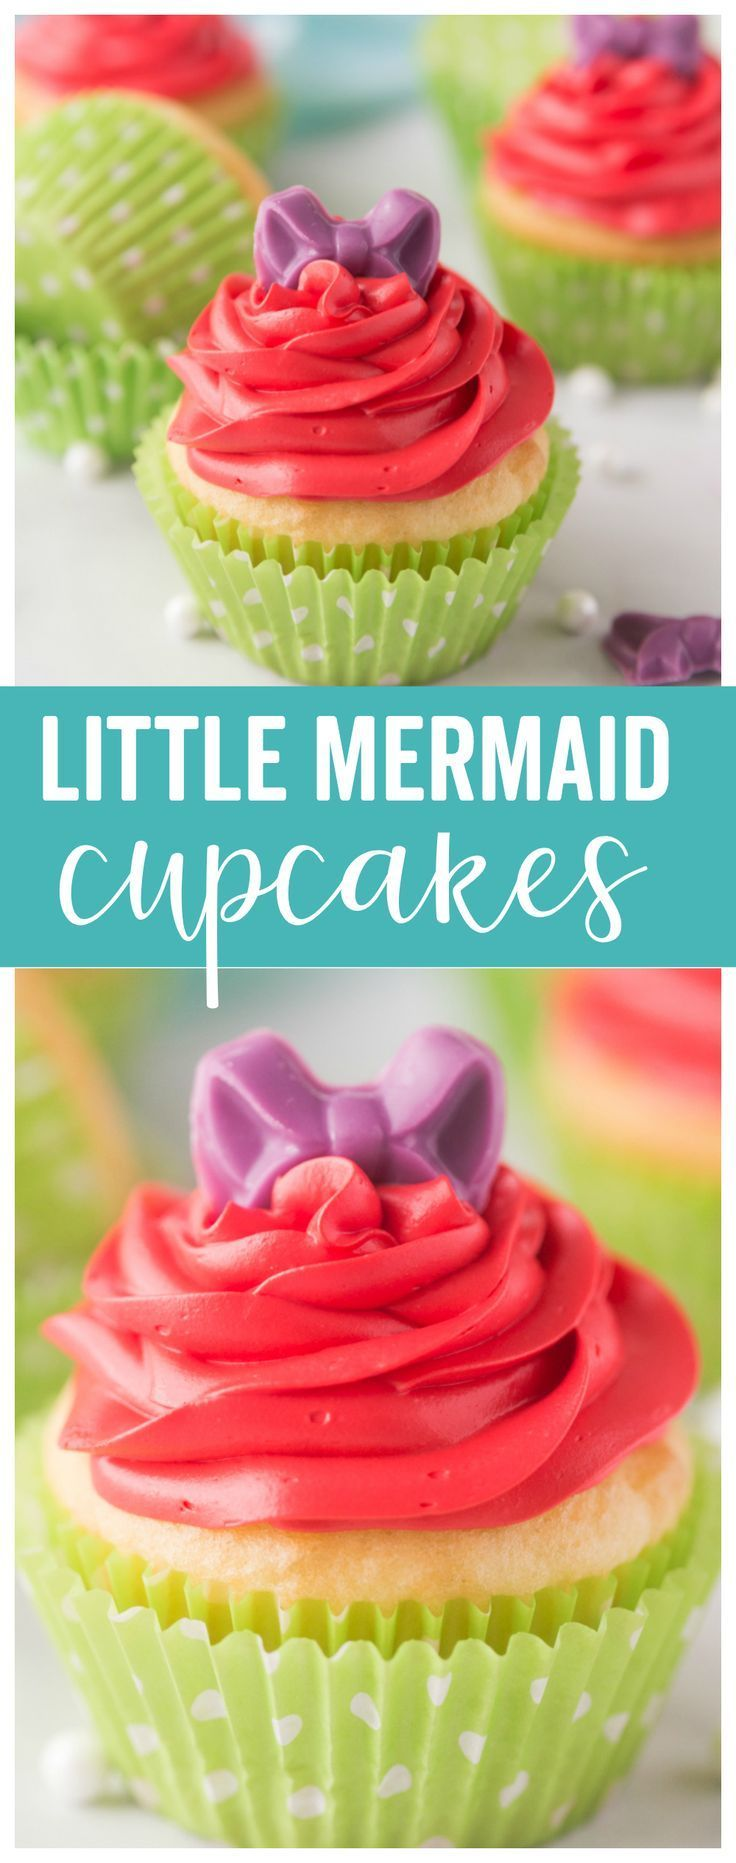 Little Mermaid Cupcakes are the perfect tasty cupcake treat for any Ariel, The Little Mermaid, party! Mermaid Cupcakes are the perfect tasty cupcake treat for any Ariel, The Little Mermaid, party!